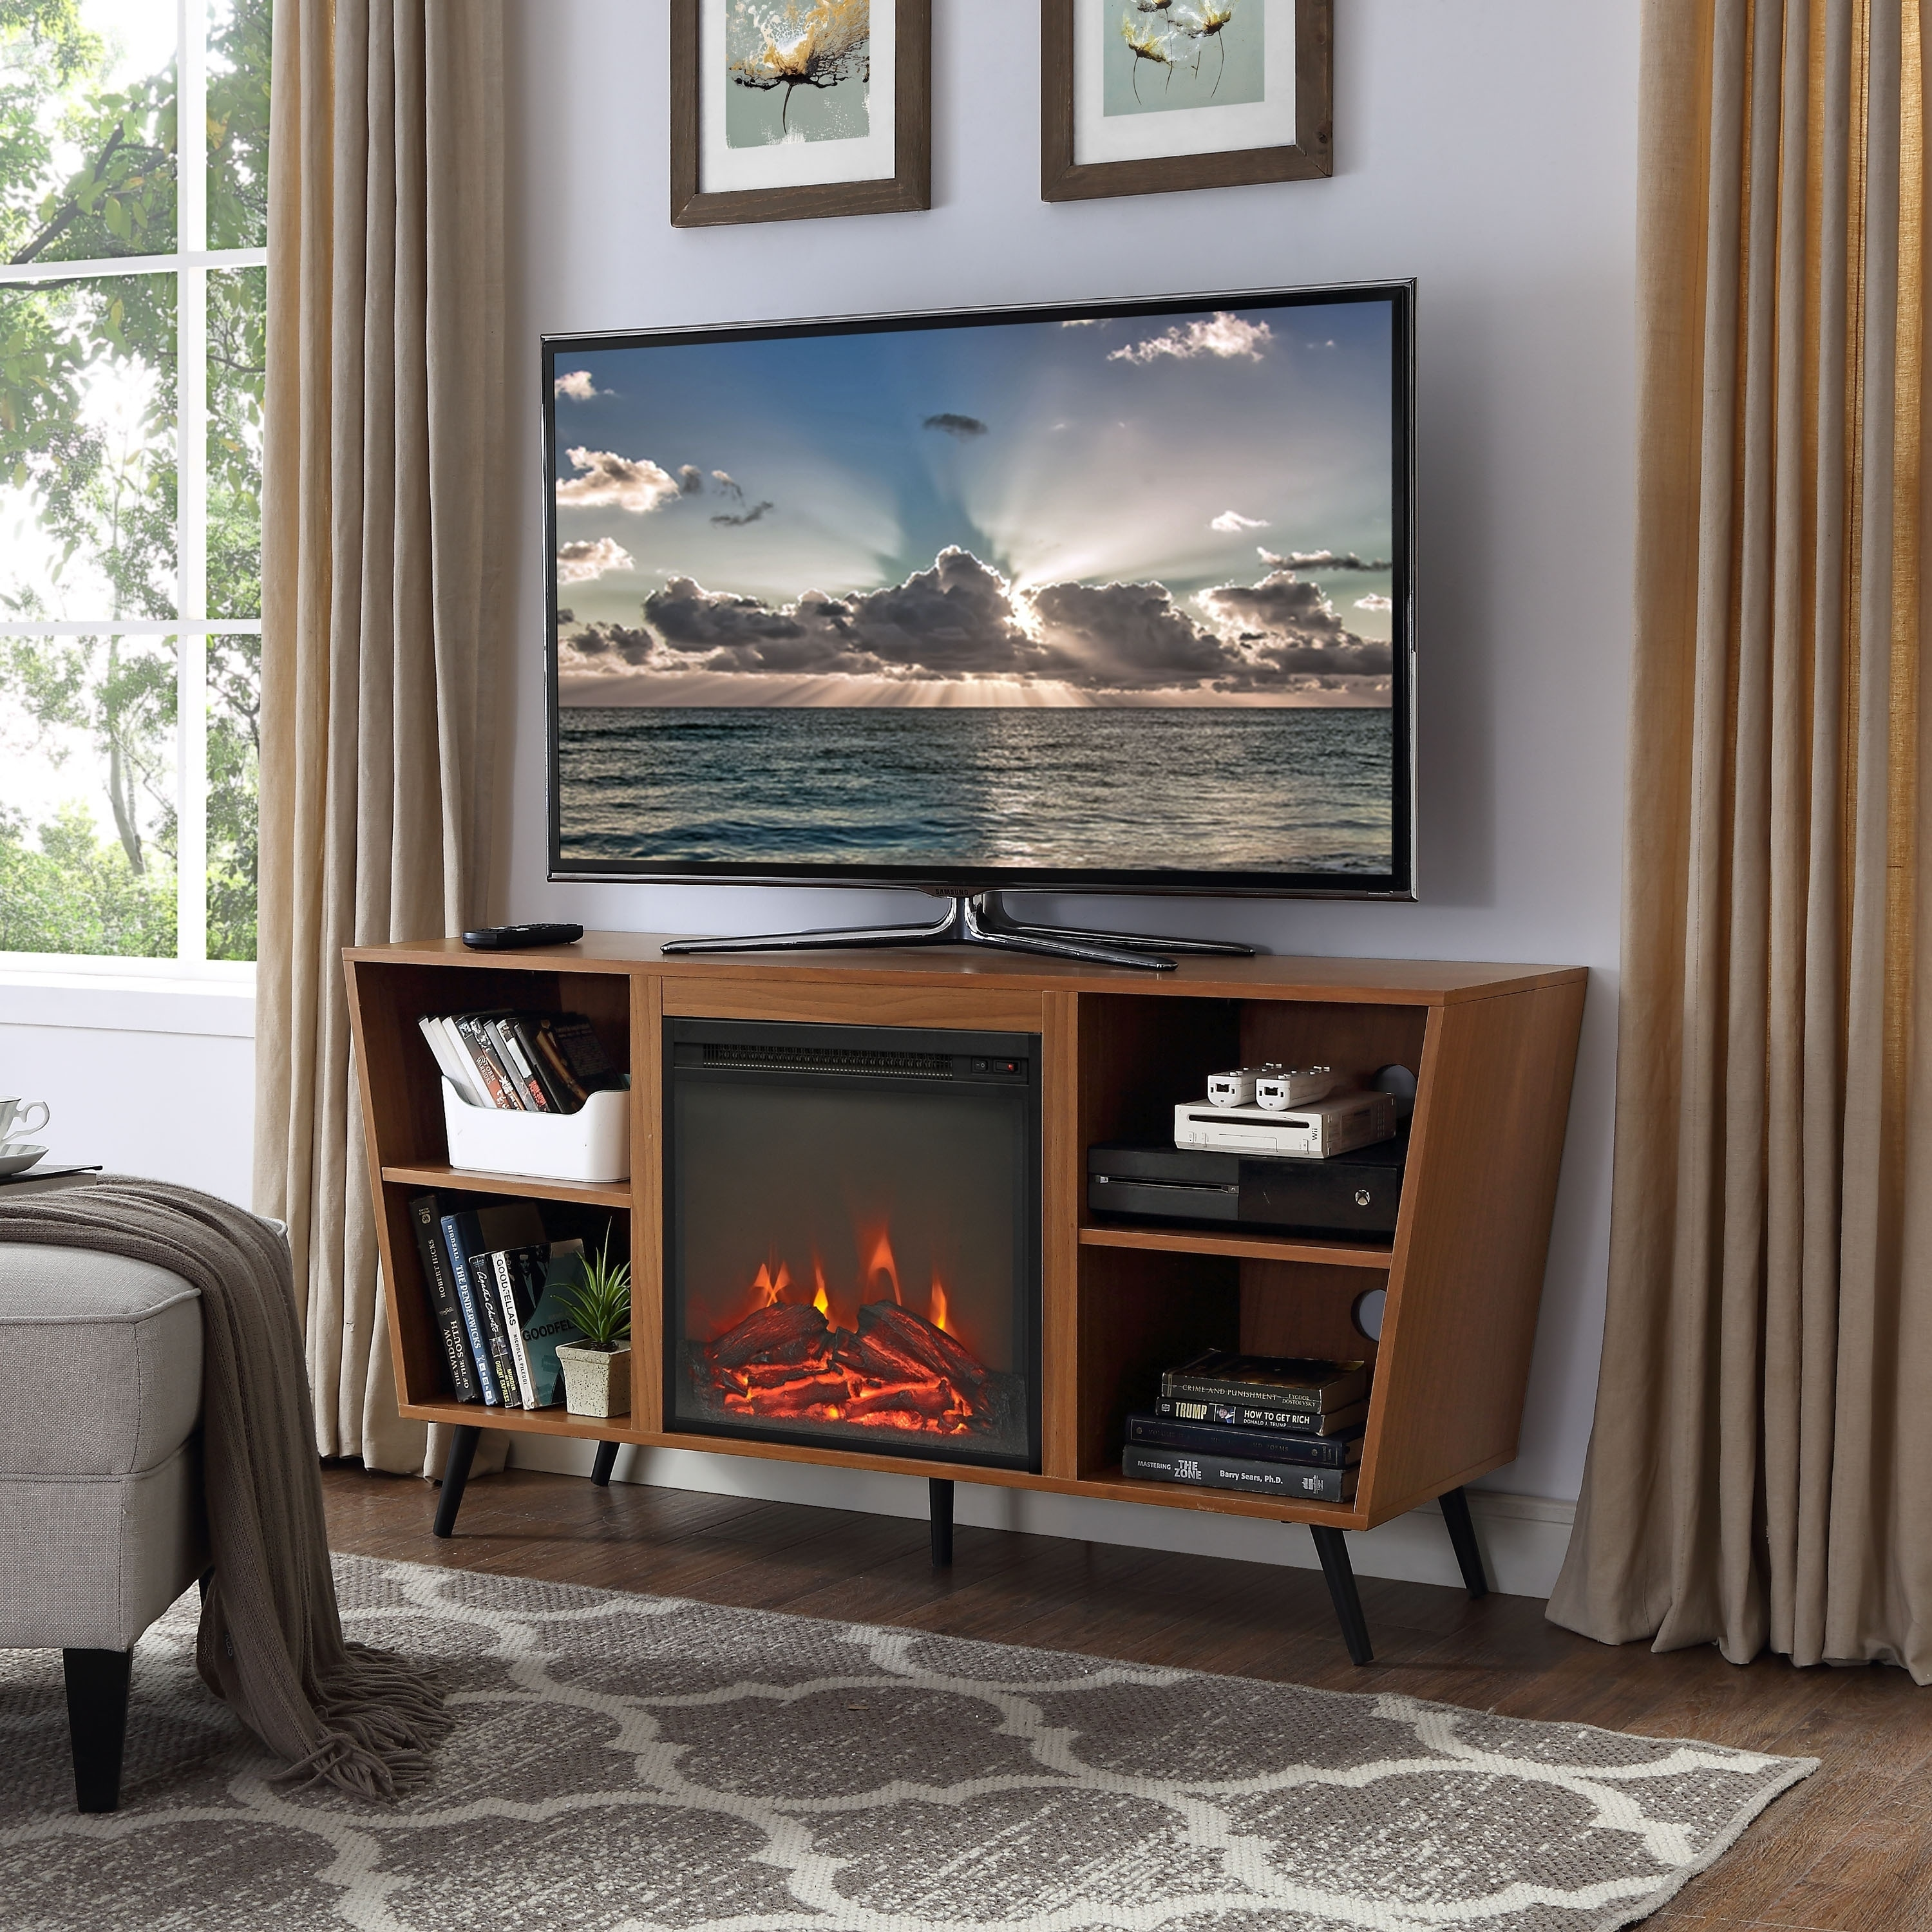 walker tvs stand driftwood edison sears for tv up with majestic insert living fireplace design